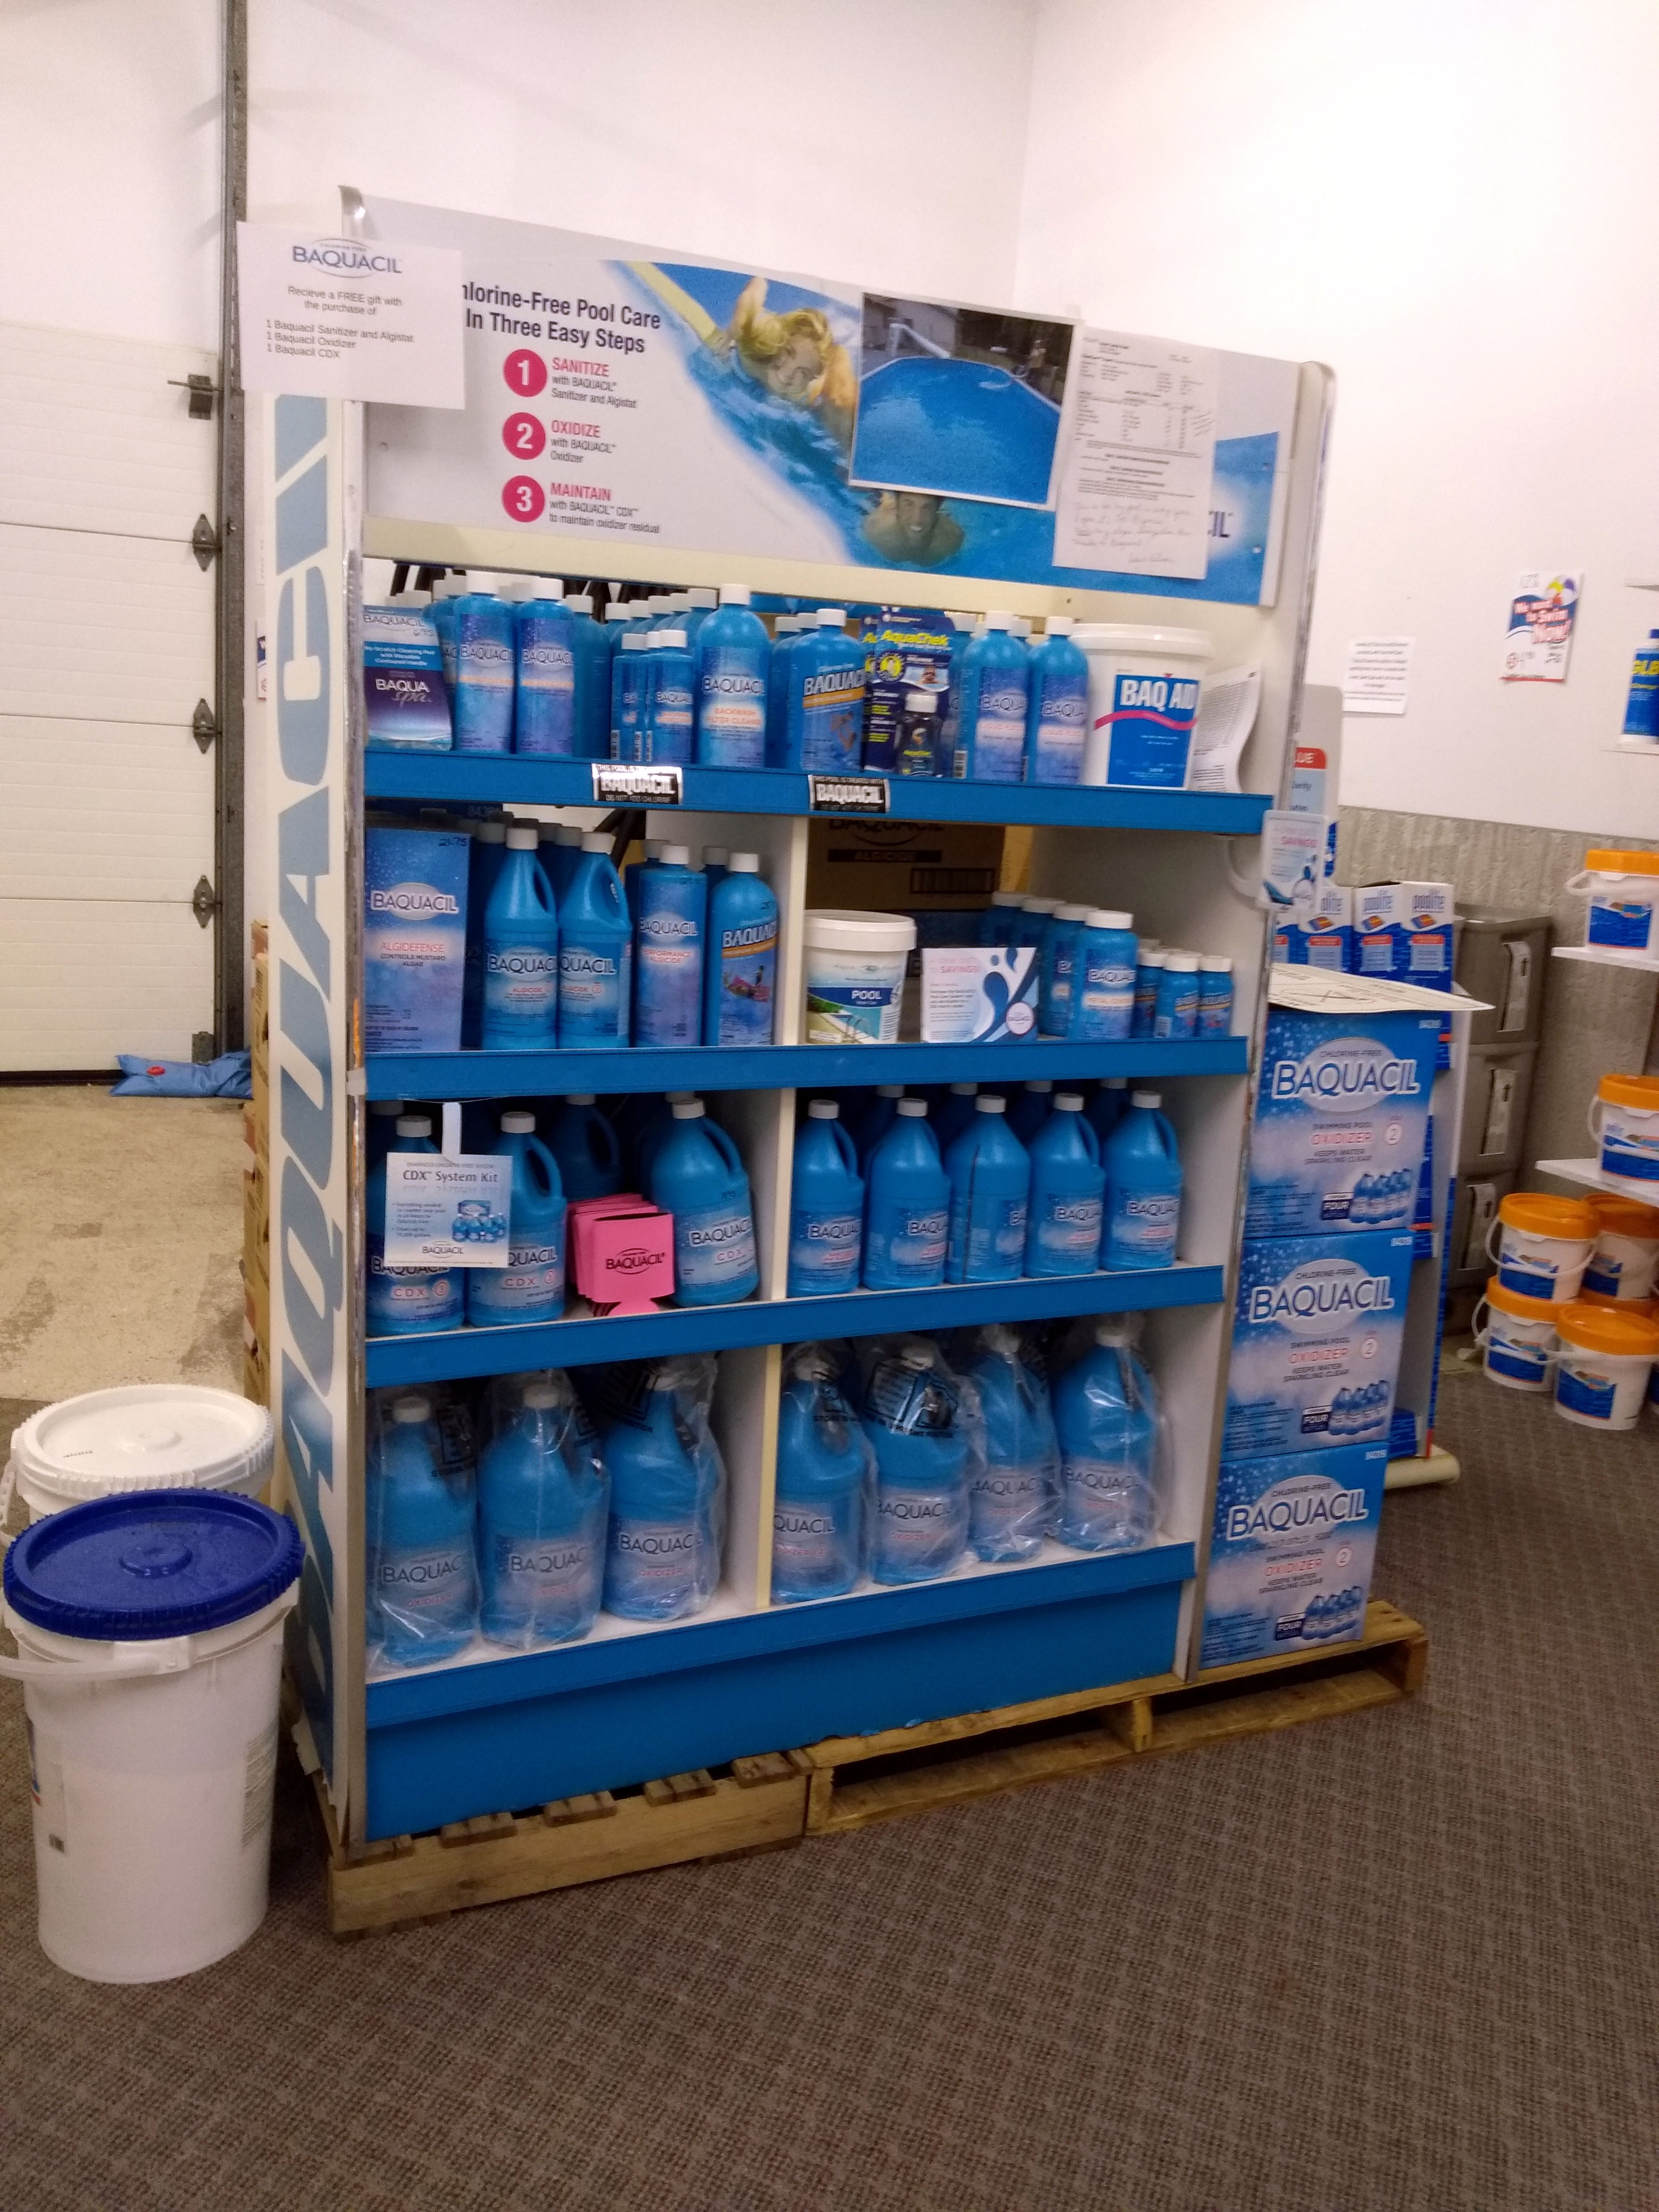 Baquacil Line of Pool Care products